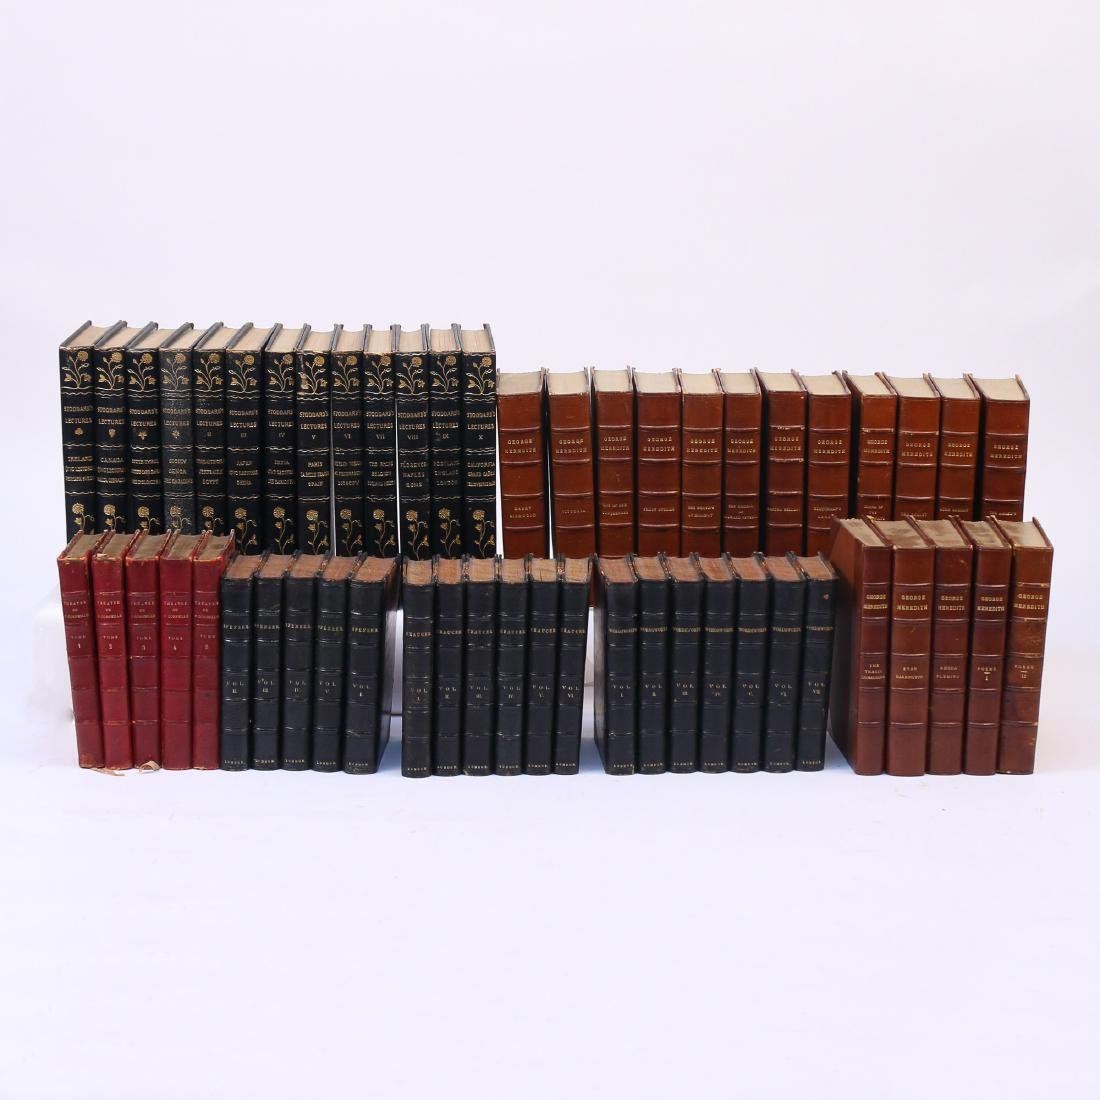 (53vol) [BINDINGS] MISC. LEATHER-BOUND BOOKS